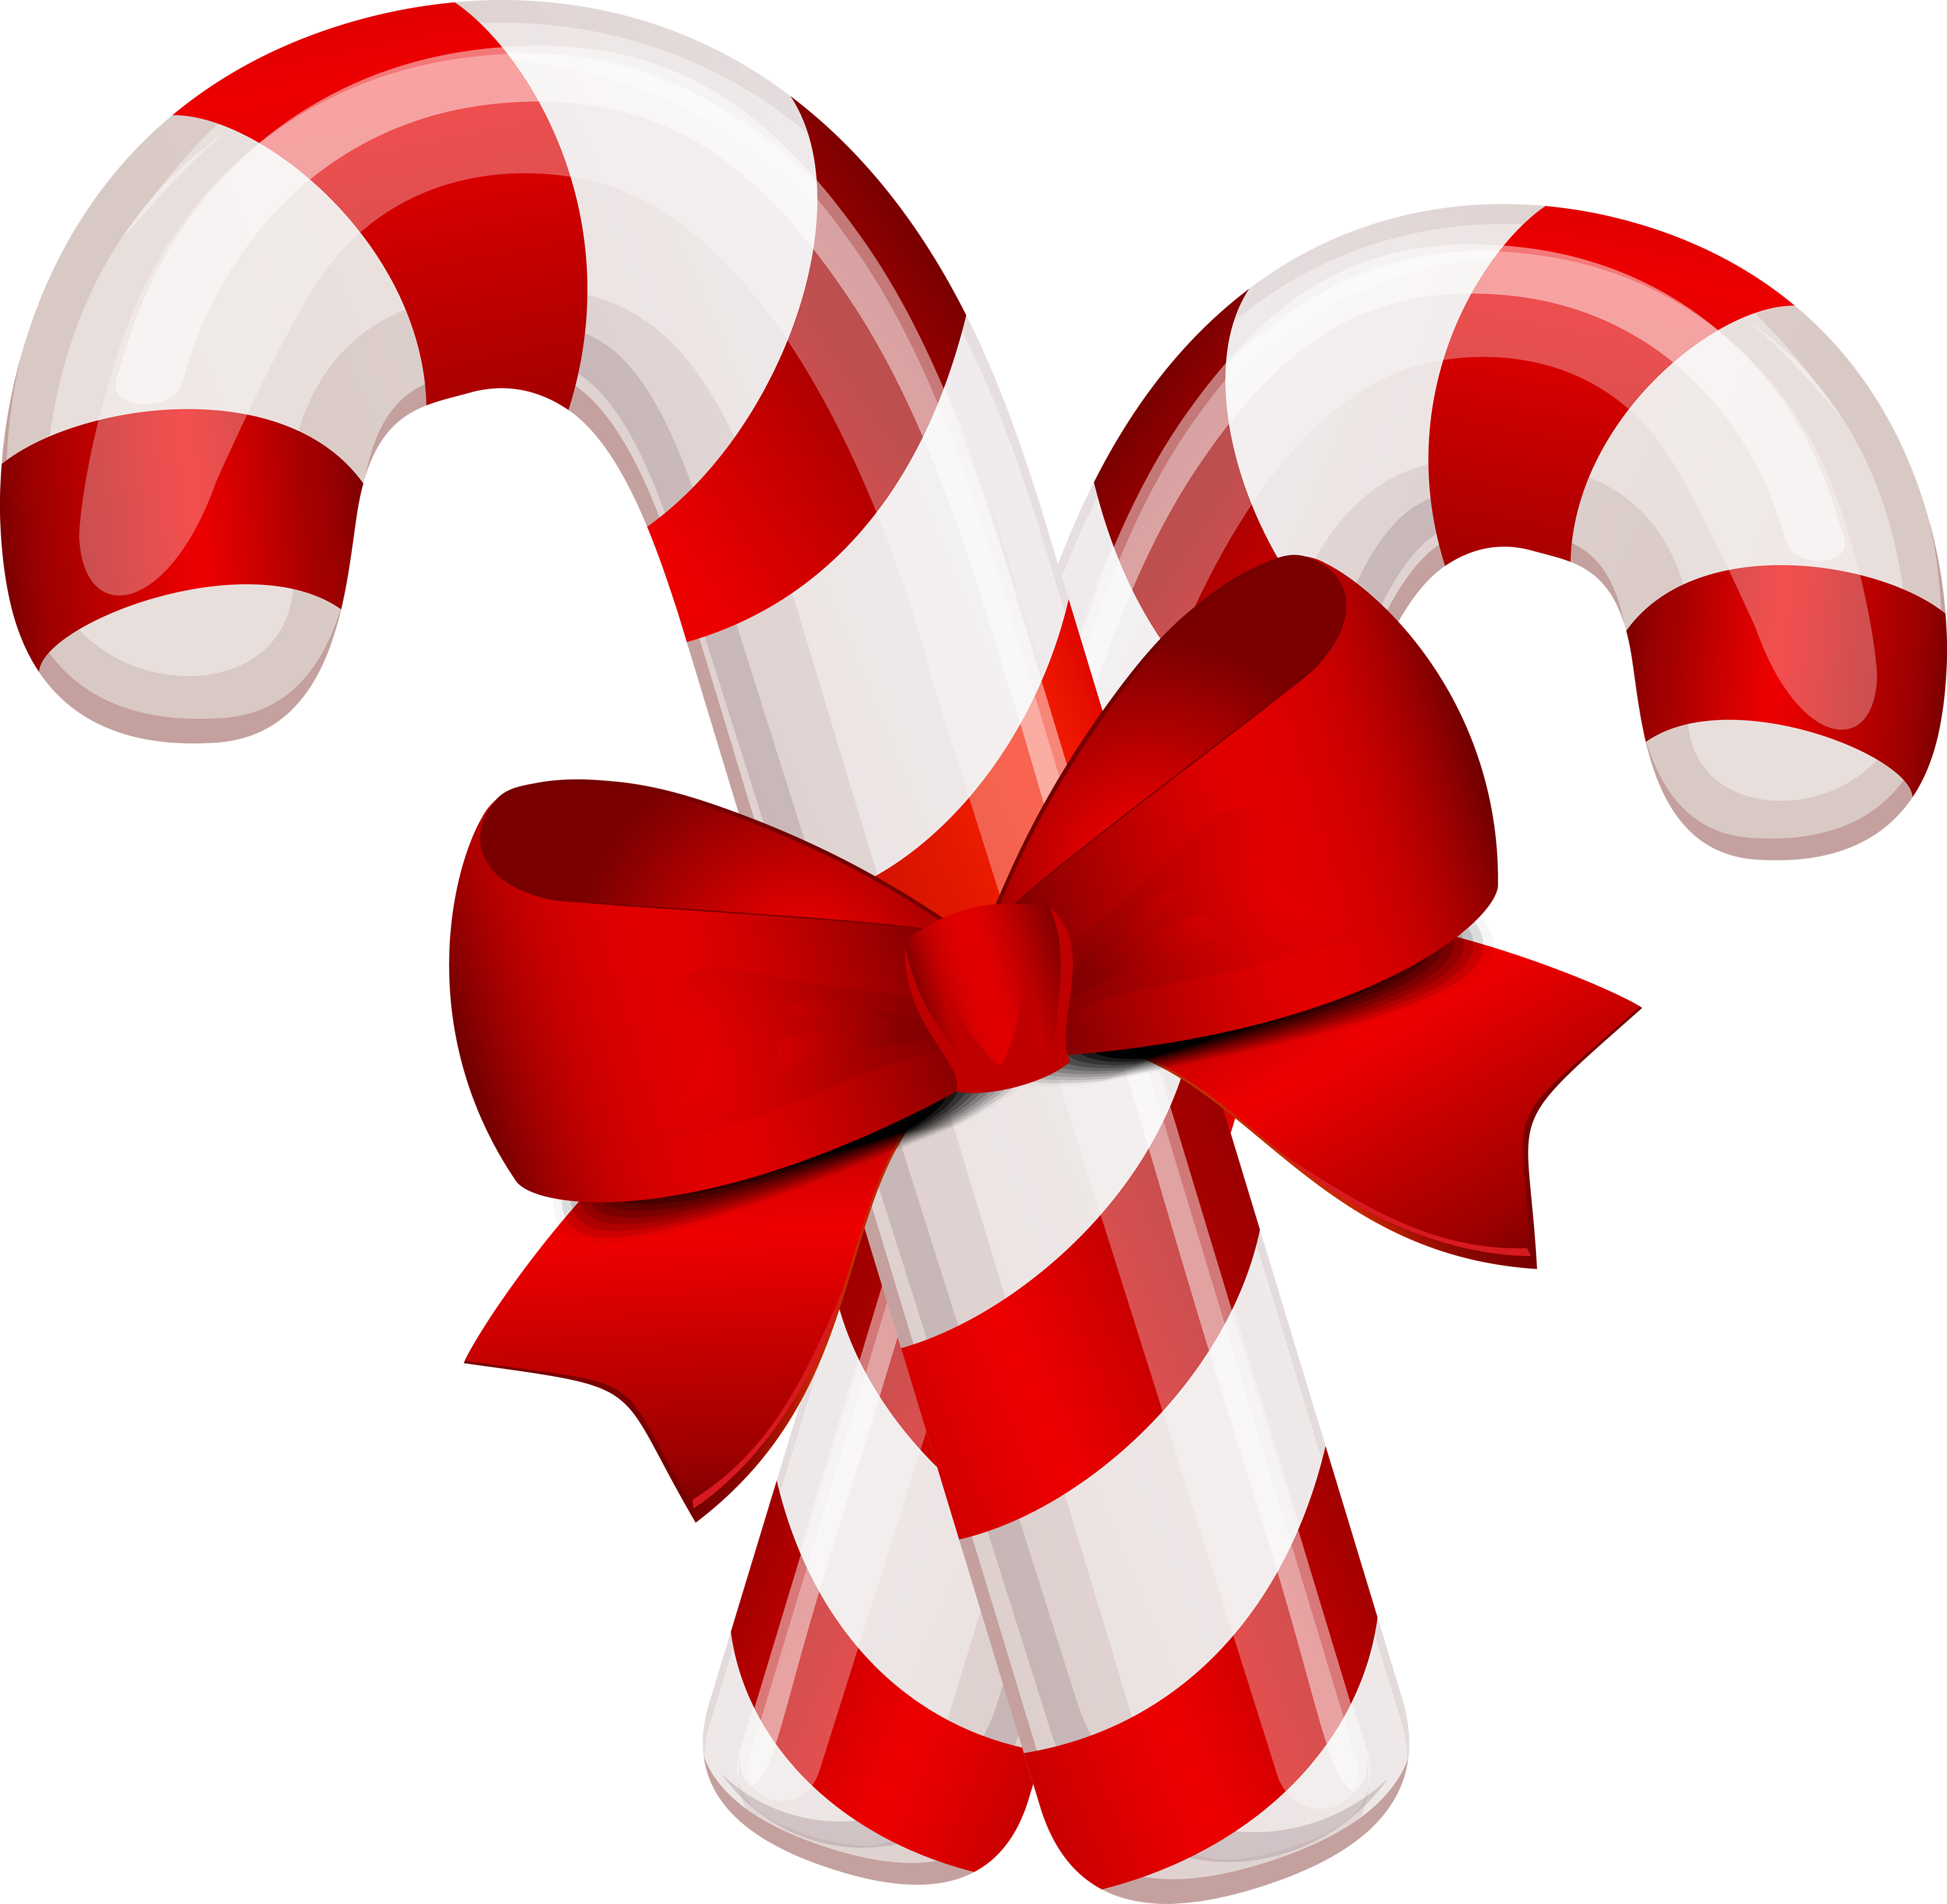 Christmas Candy PNG Image - PurePNG | Free transparent CC0 PNG Image ...